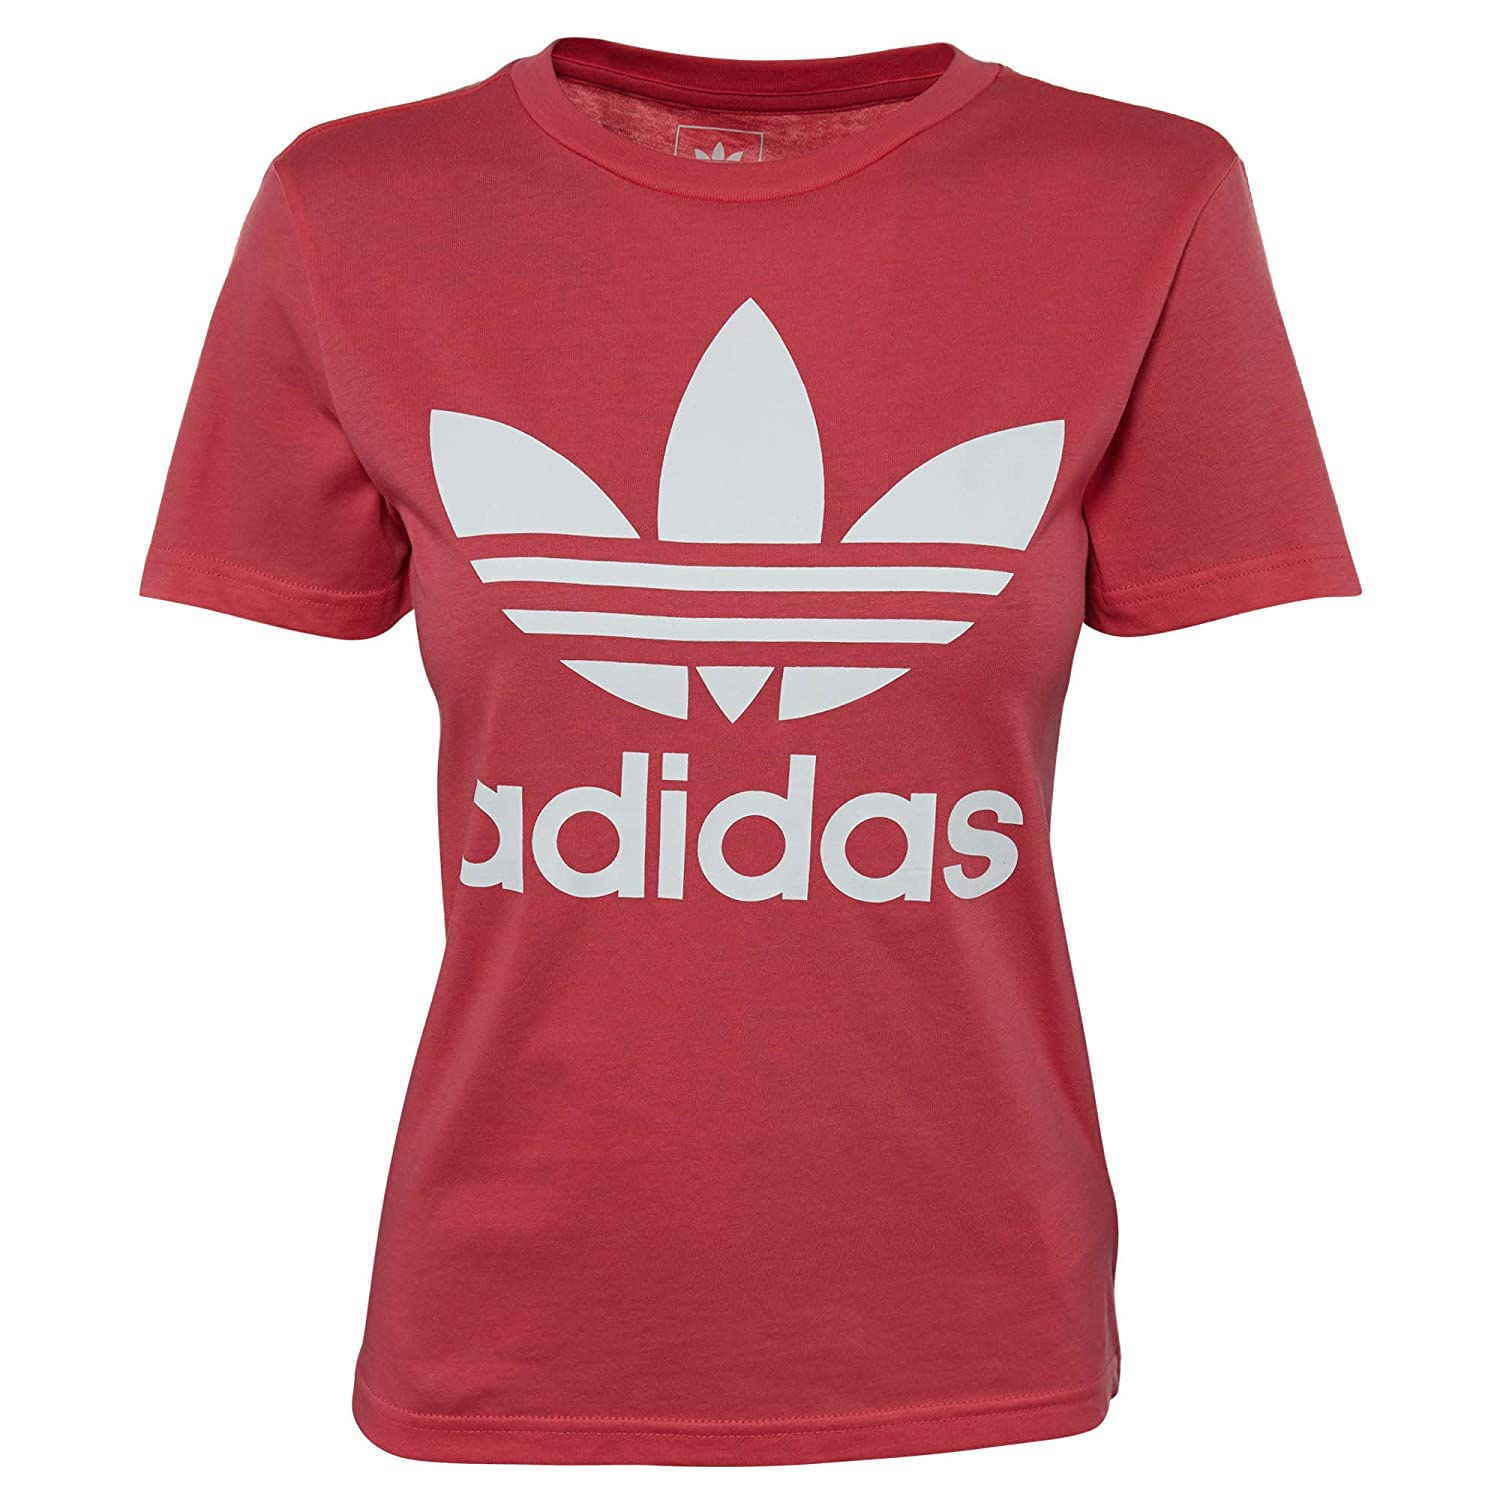 adidas Originals Kids' Trefoil Tee